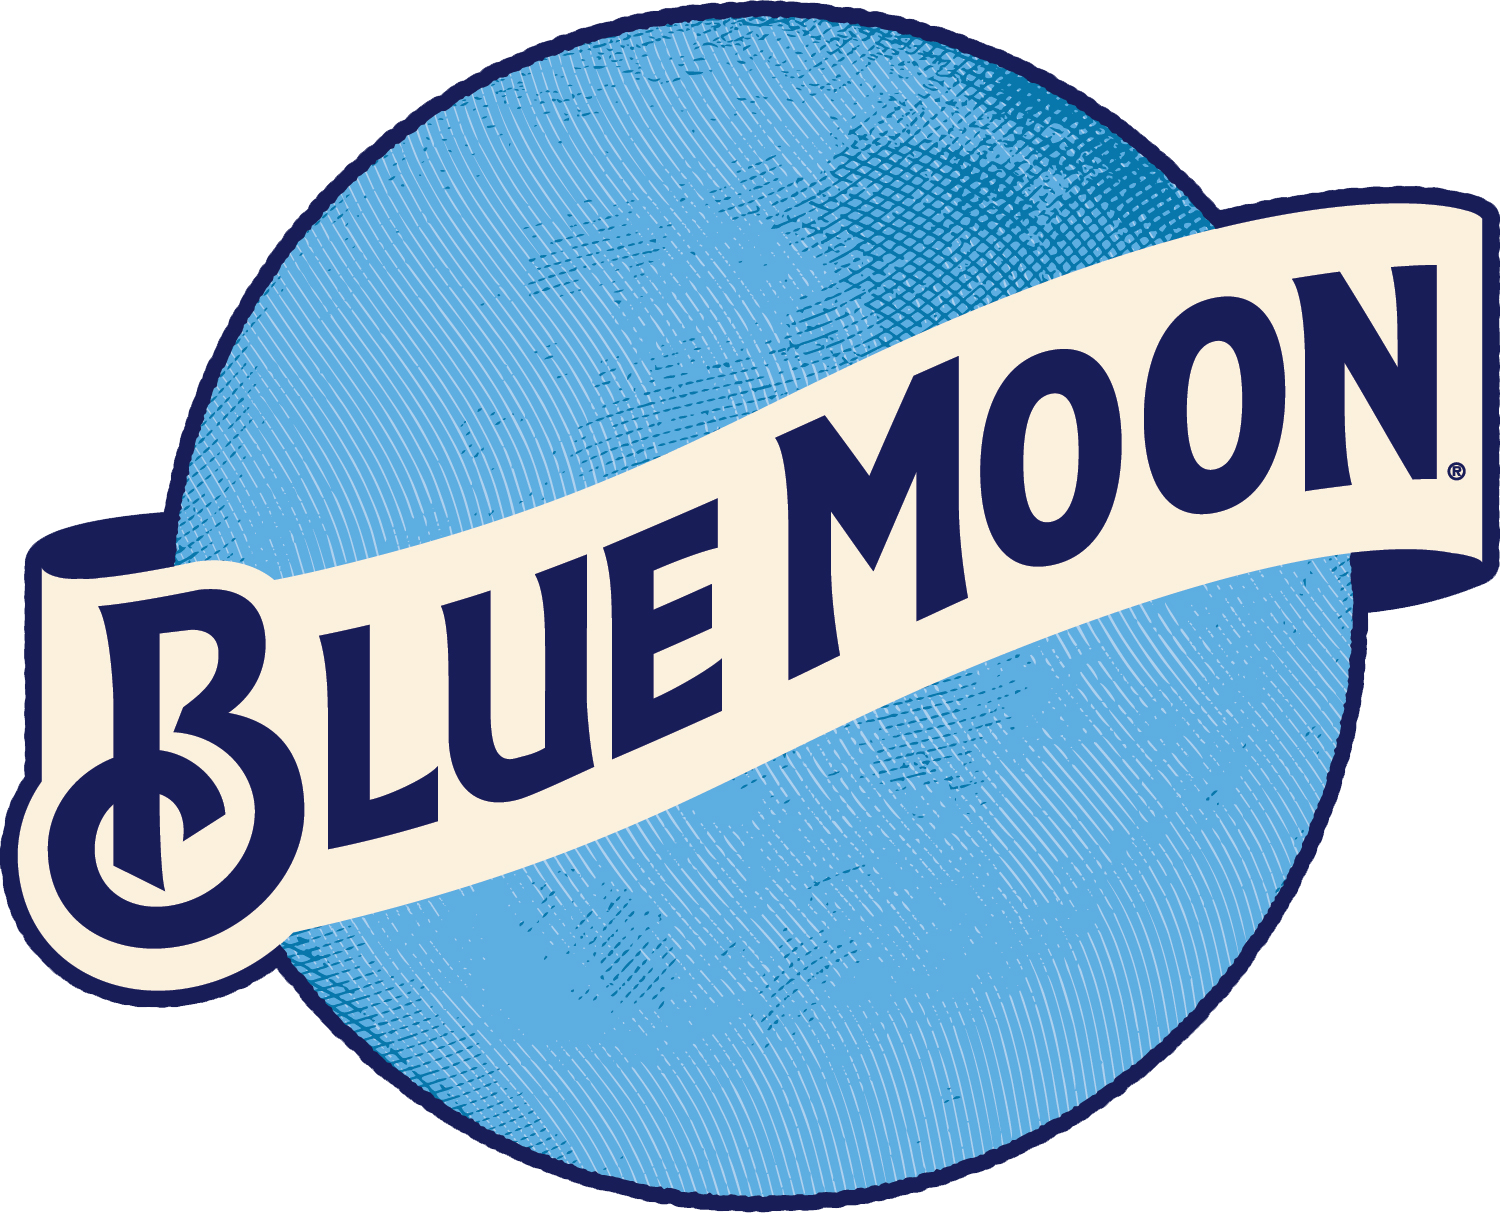 Fine american and imported. Blue moon logo png jpg free